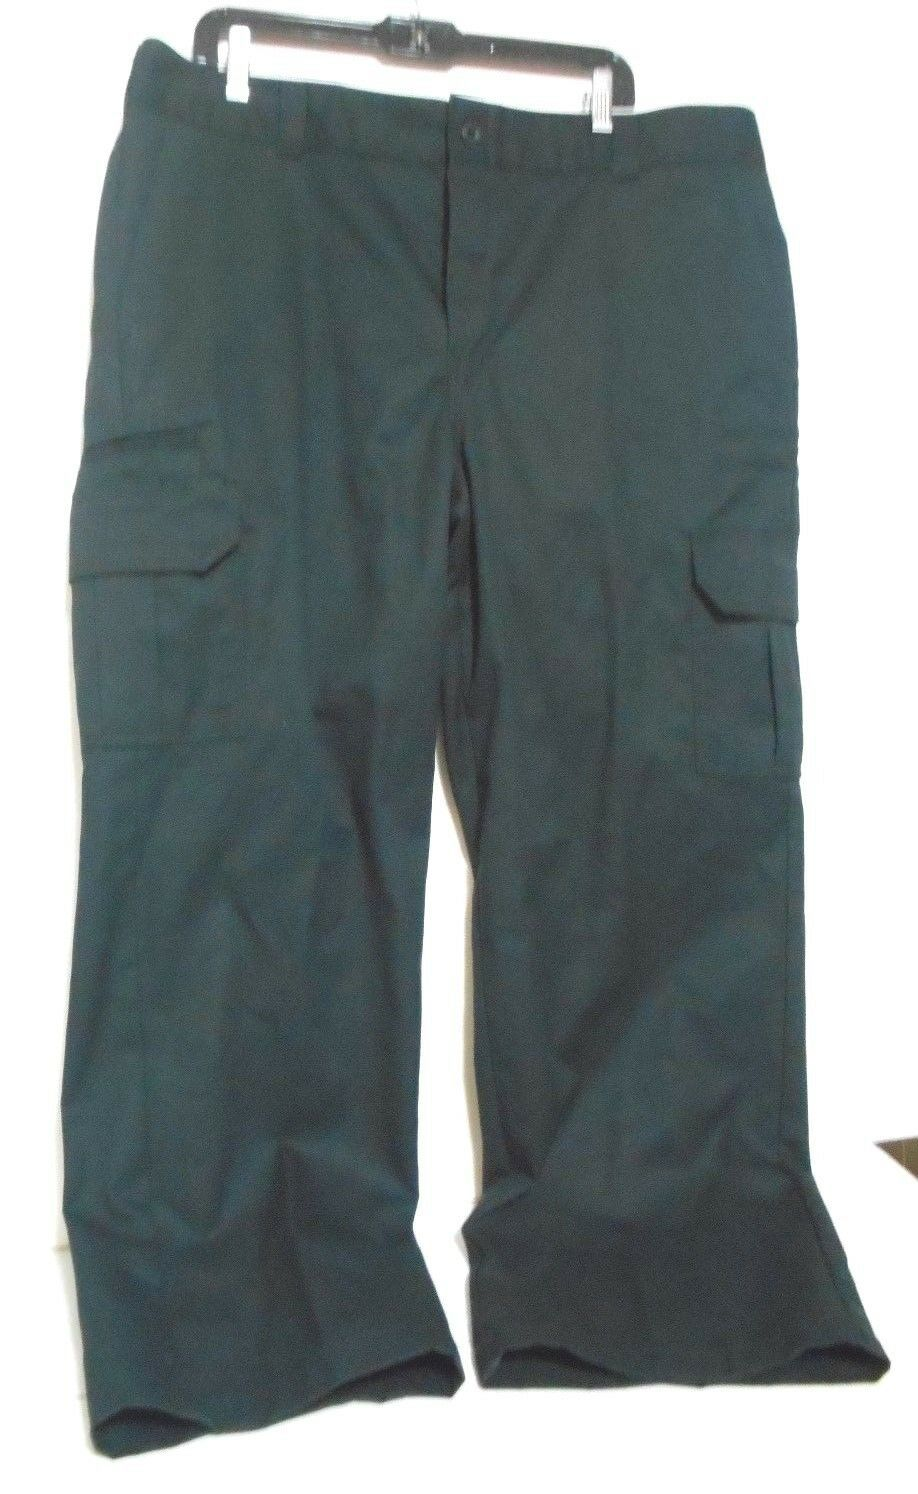 Primary image for Dickies Black 34x30 Regular Straight Cotton Blend Pants